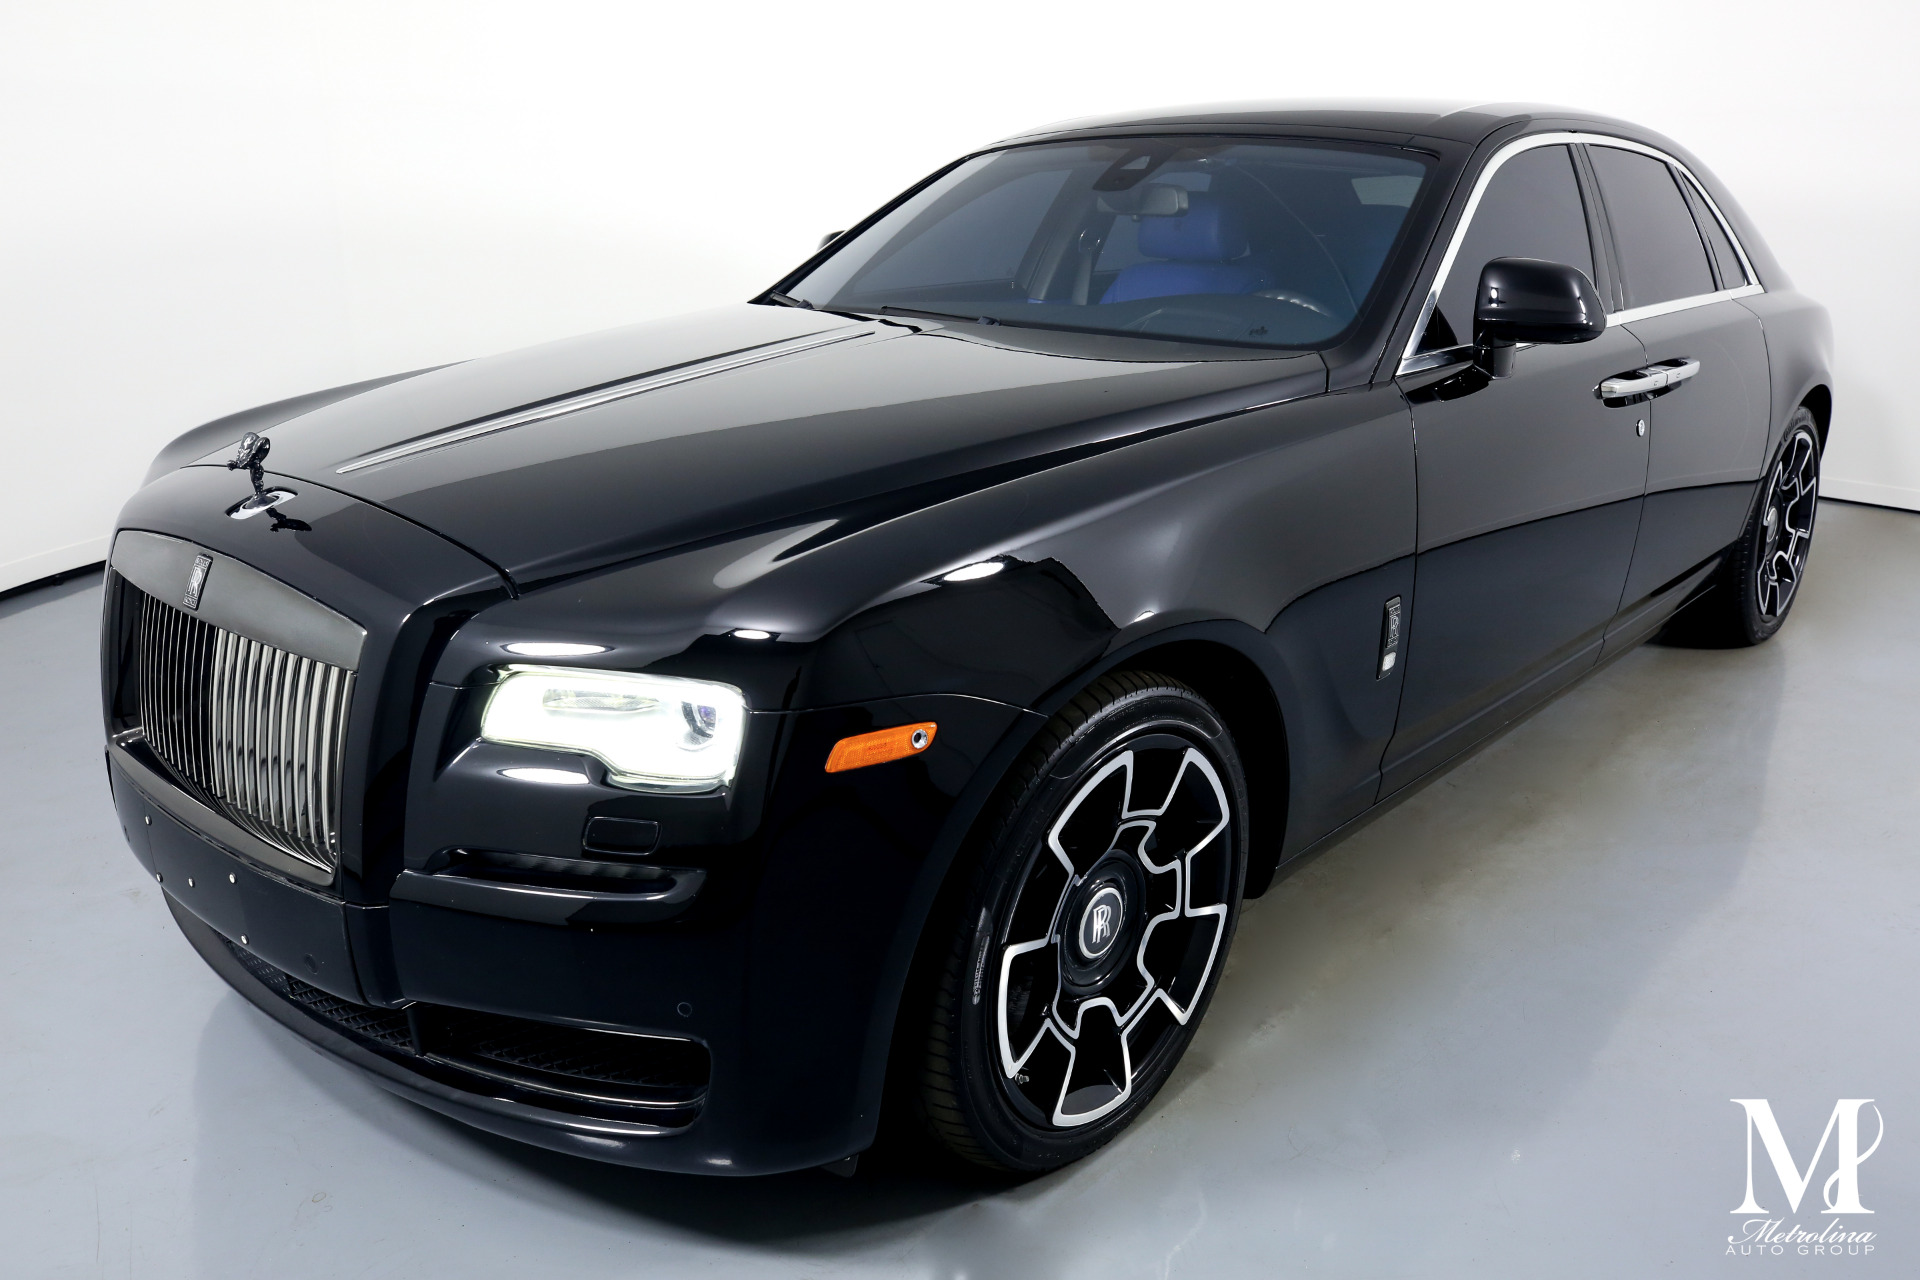 Used 2017 Rolls-Royce Ghost for sale $214,996 at Metrolina Auto Group in Charlotte NC 28217 - 4